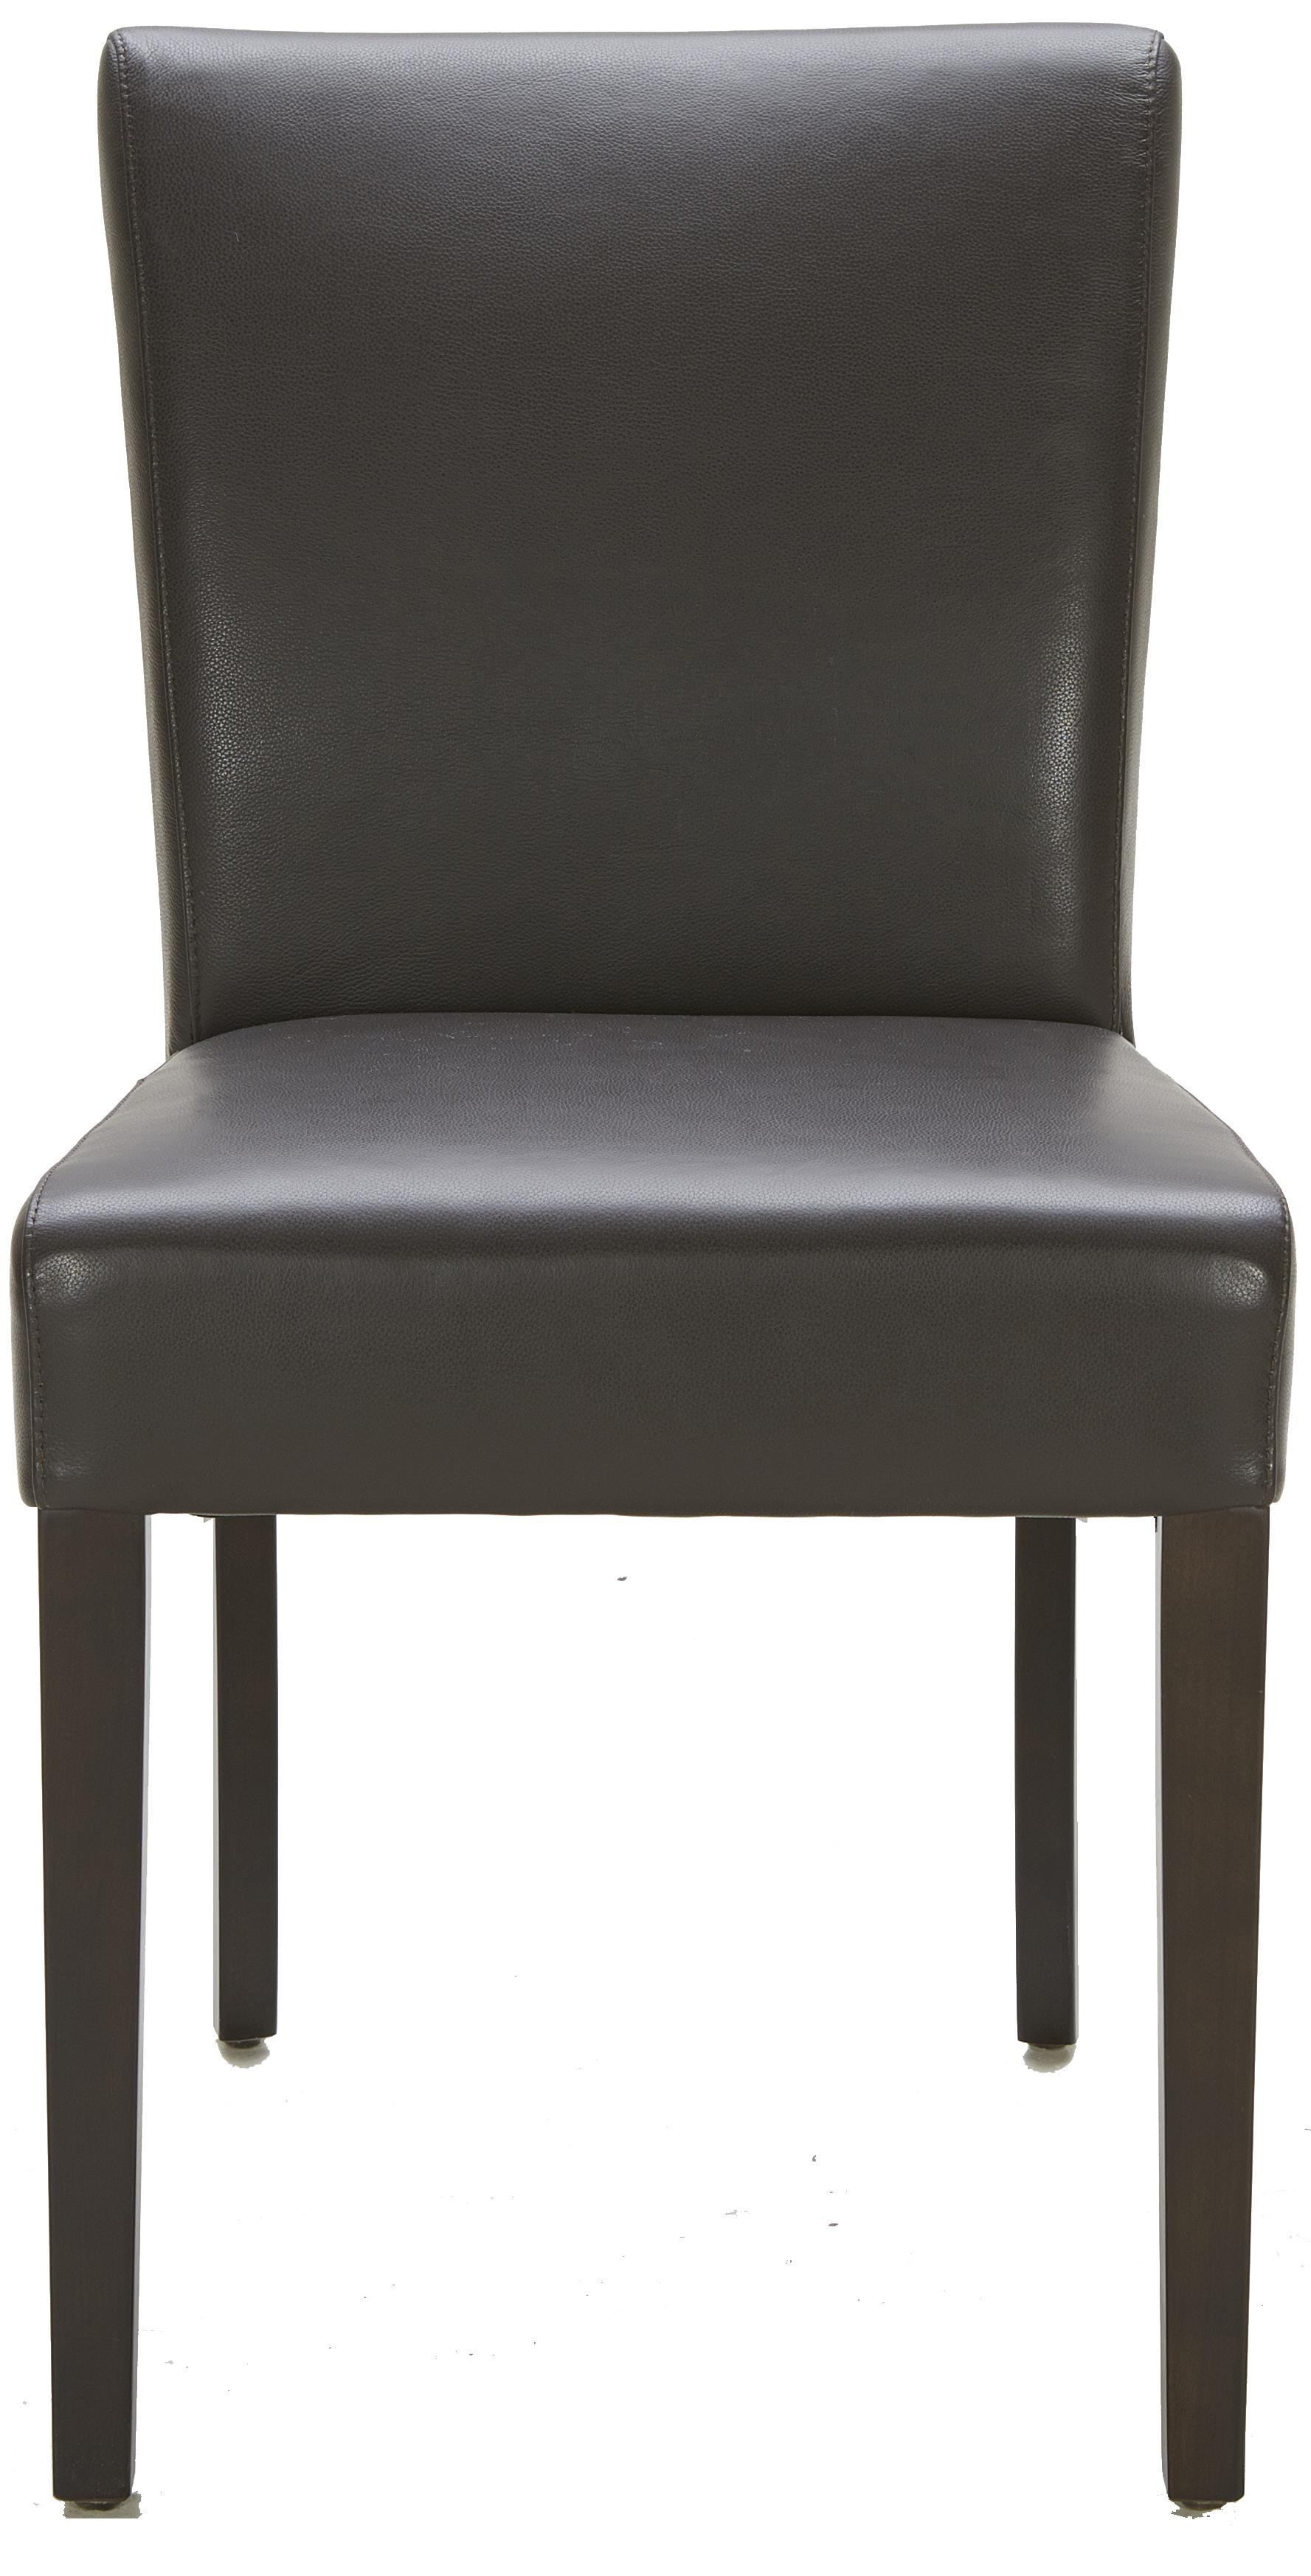 Urban Evolution Urban Dining Chairs Brown Dining Side Chair - Item Number: Y-326-M5510